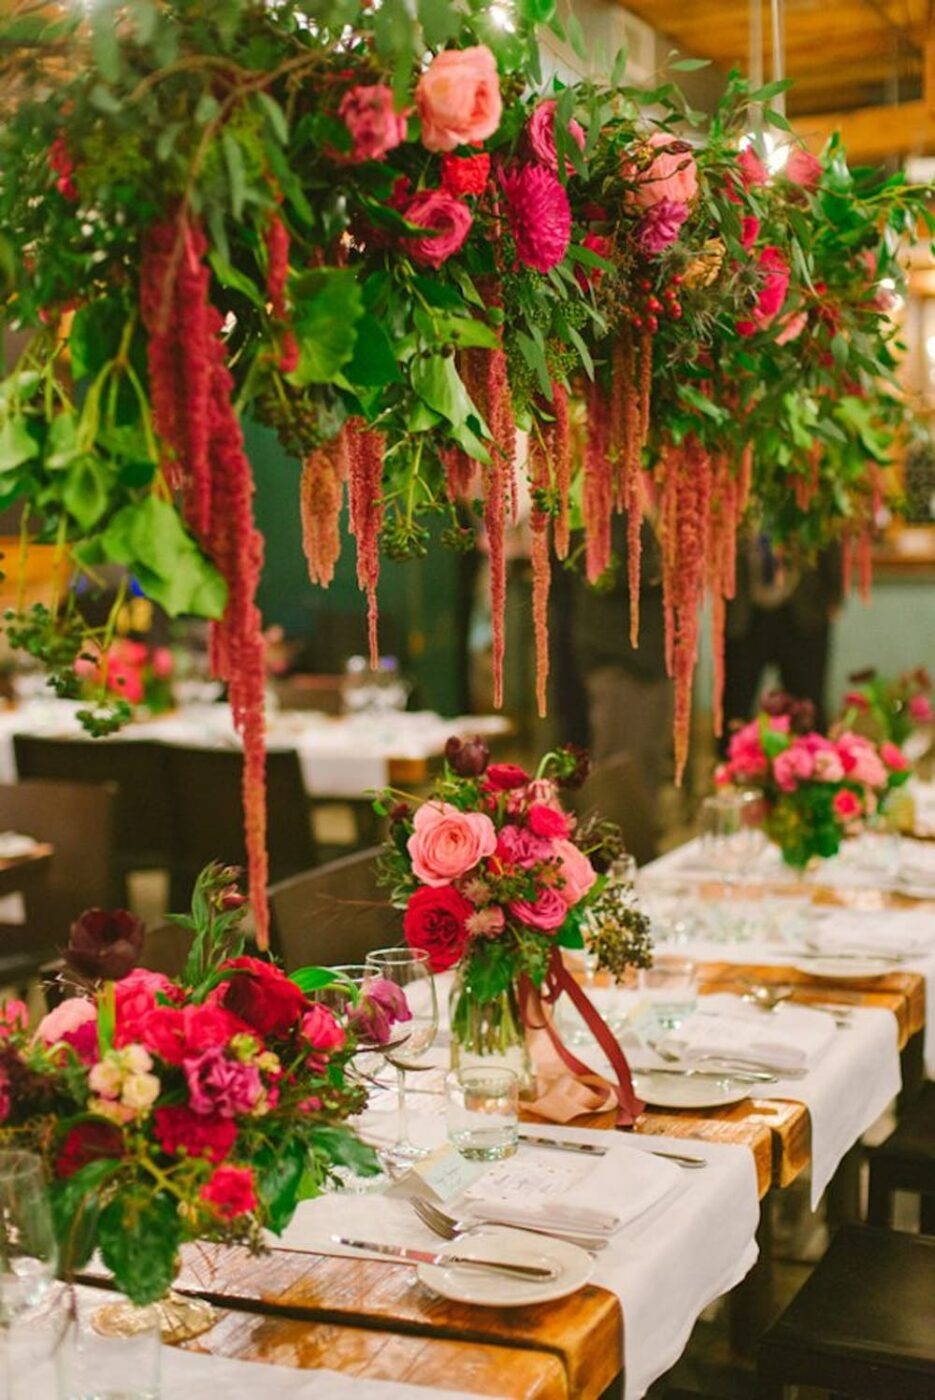 The Prettiest Hanging Floral Arrangements